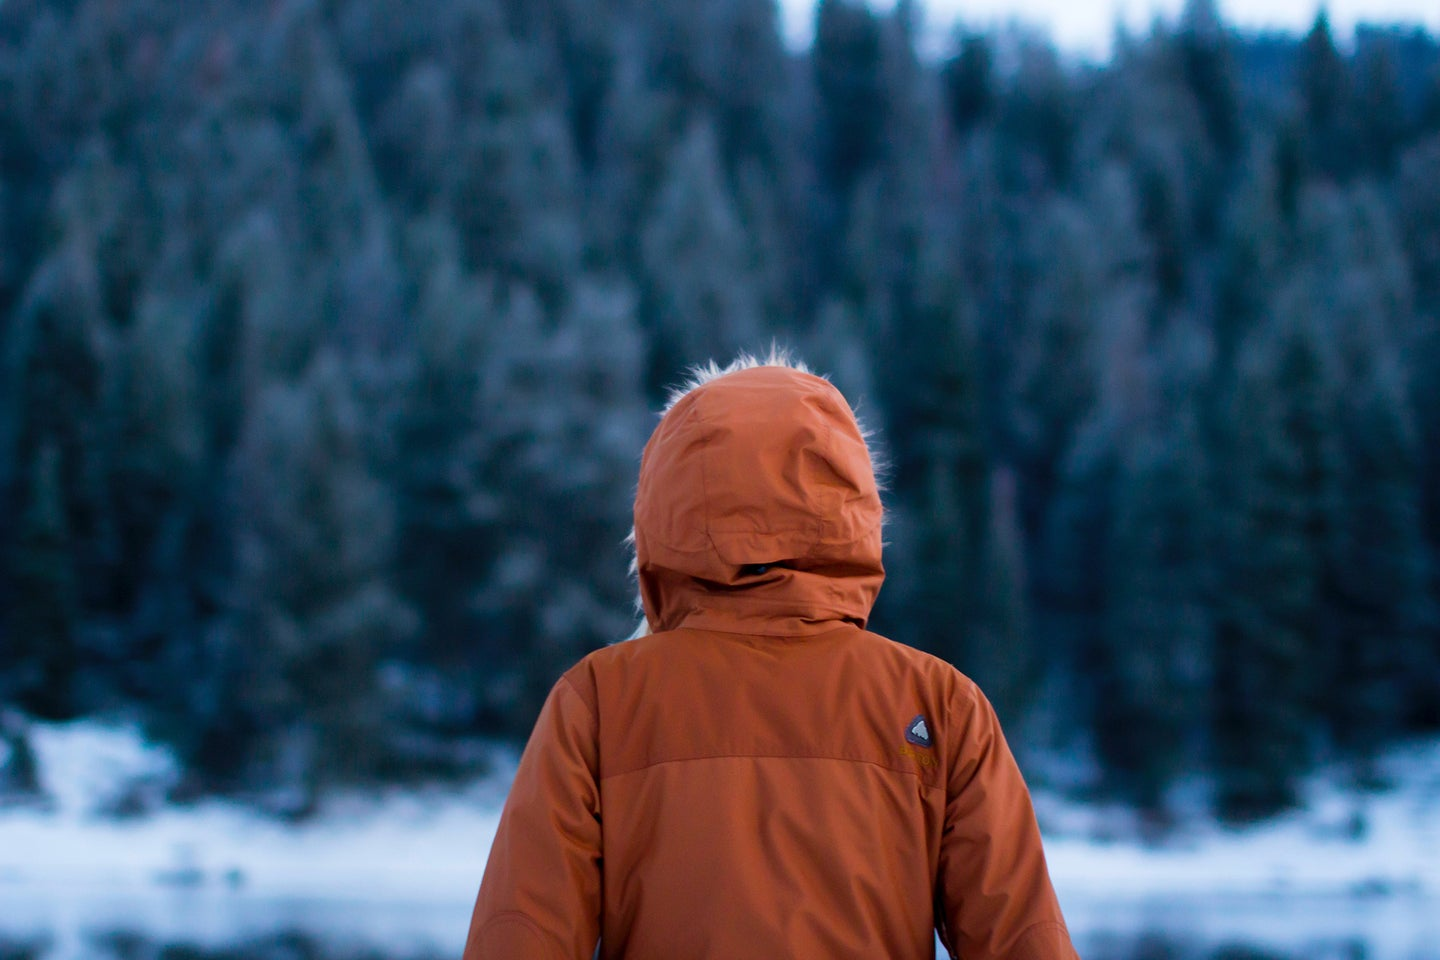 person standing in a winter wood scene with an orange park on